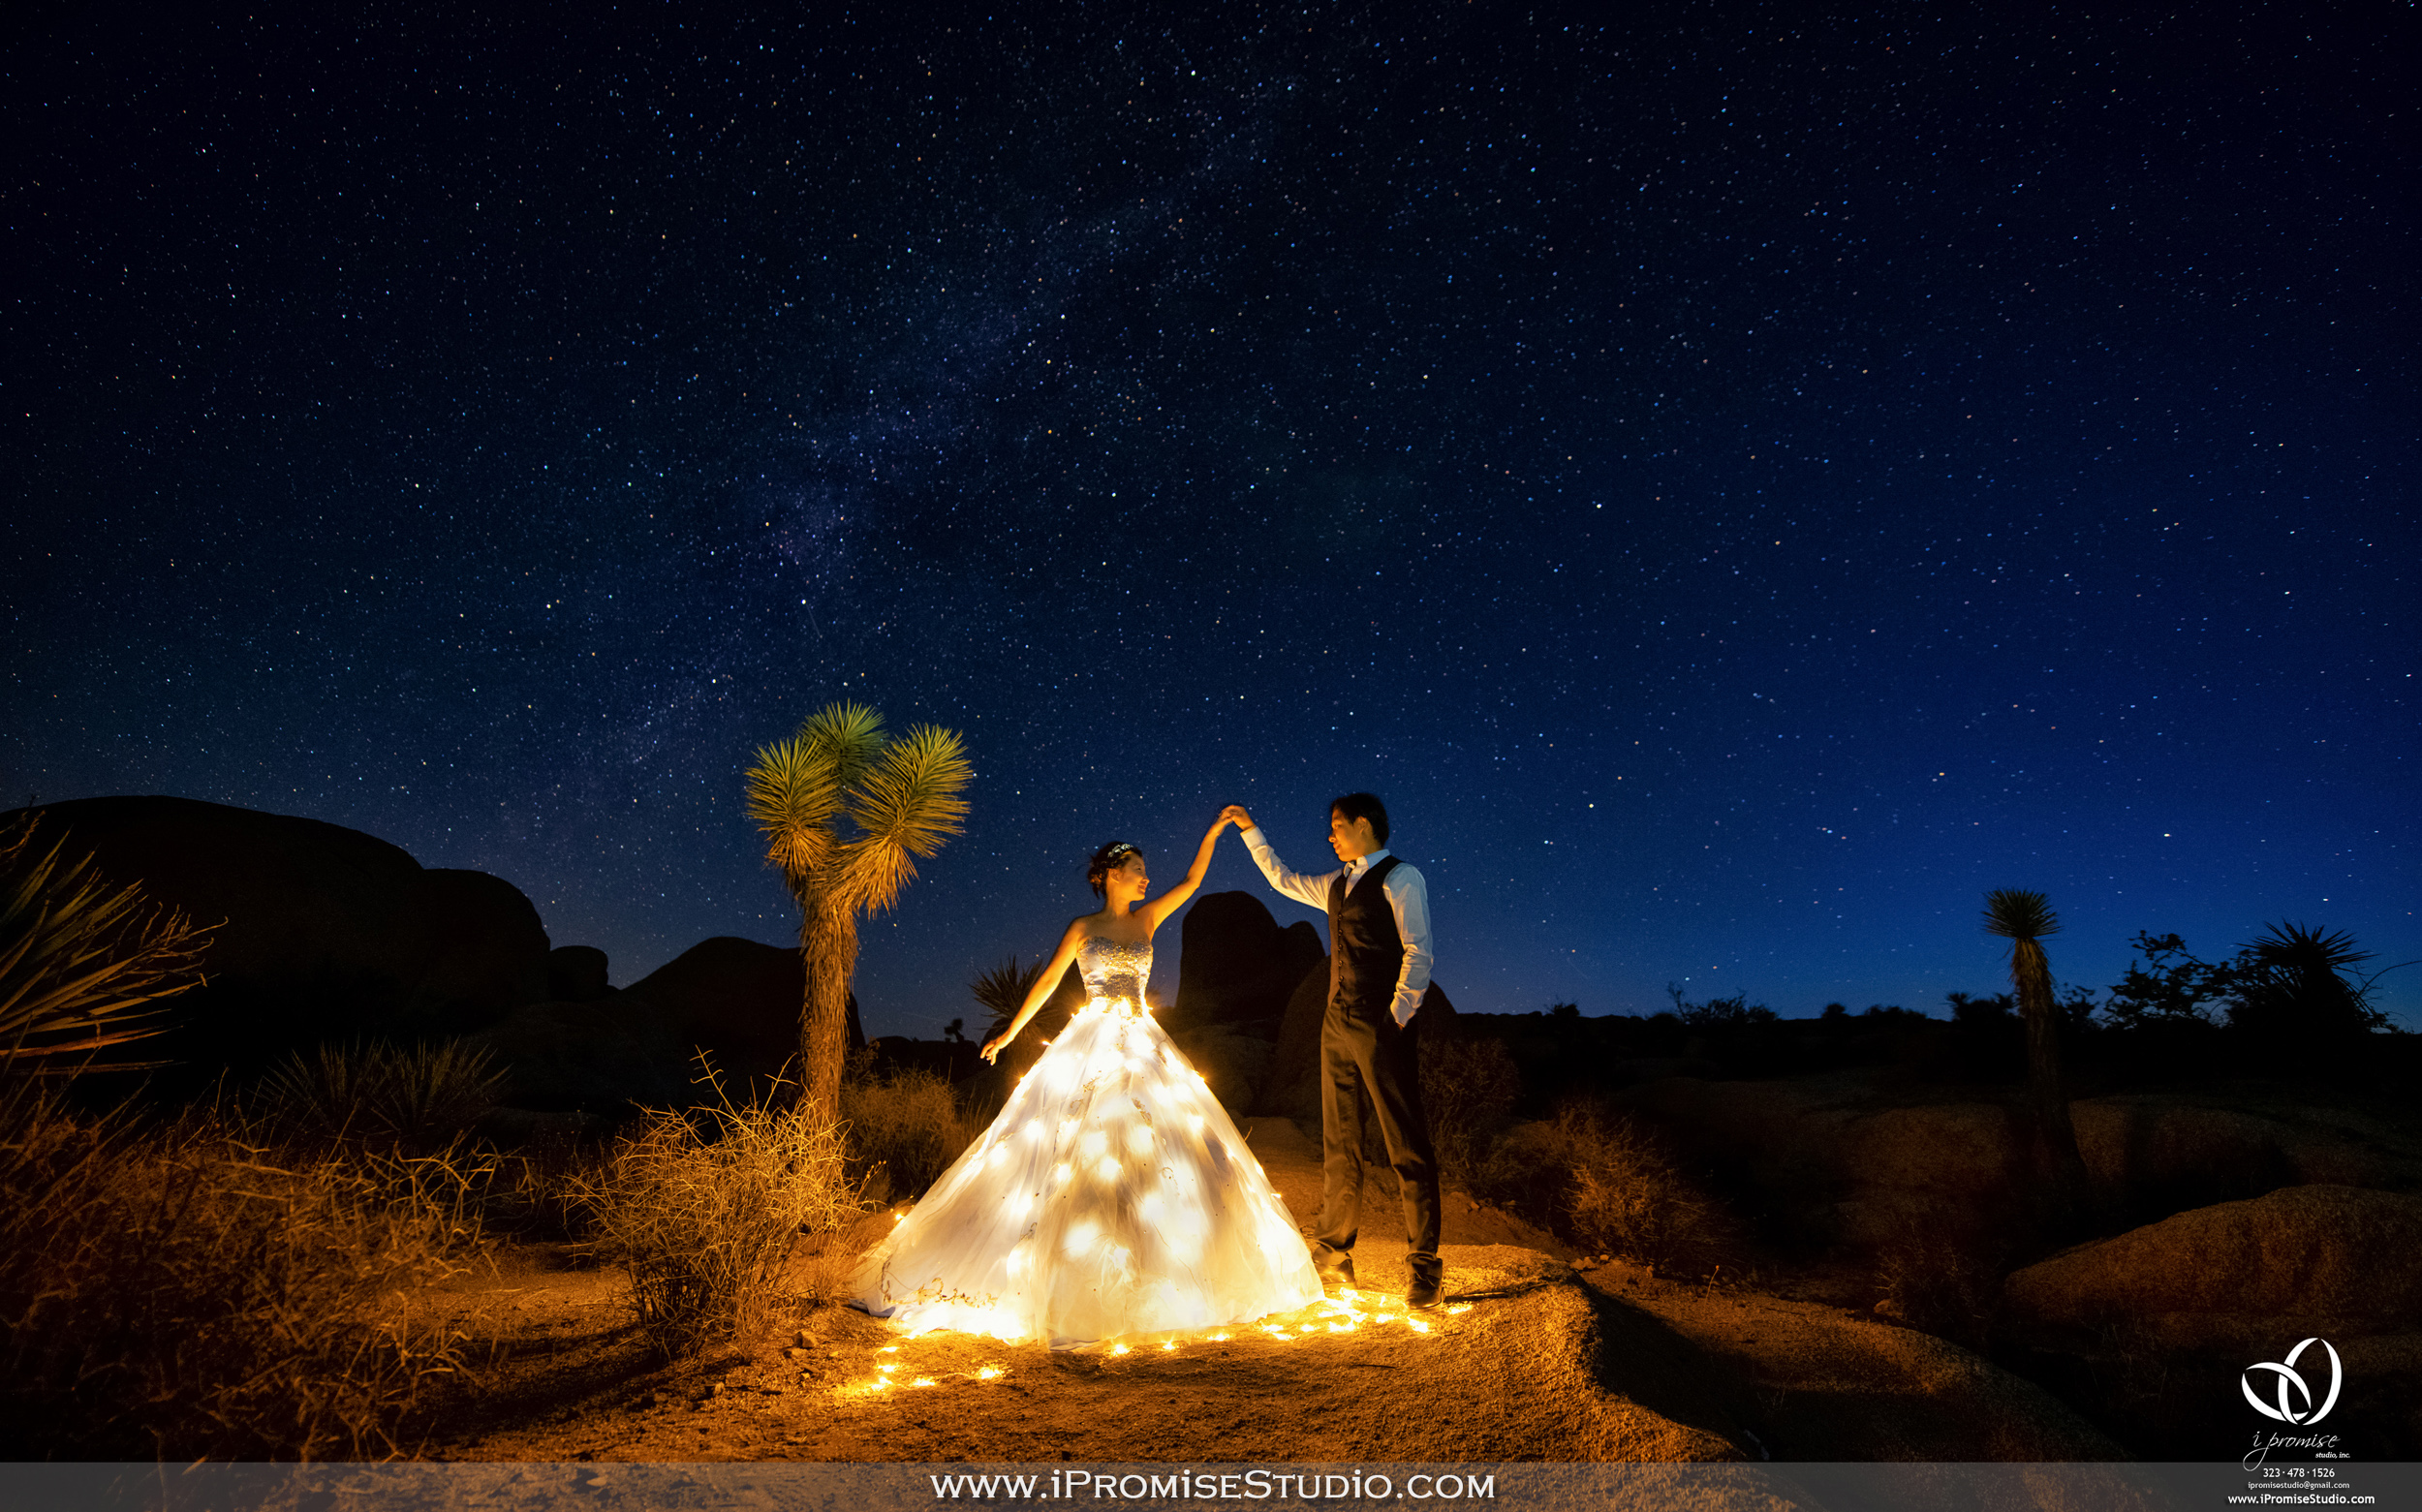 California Milky Way Galaxy Joshua Tree National Park -engagement wedding 01.JPG